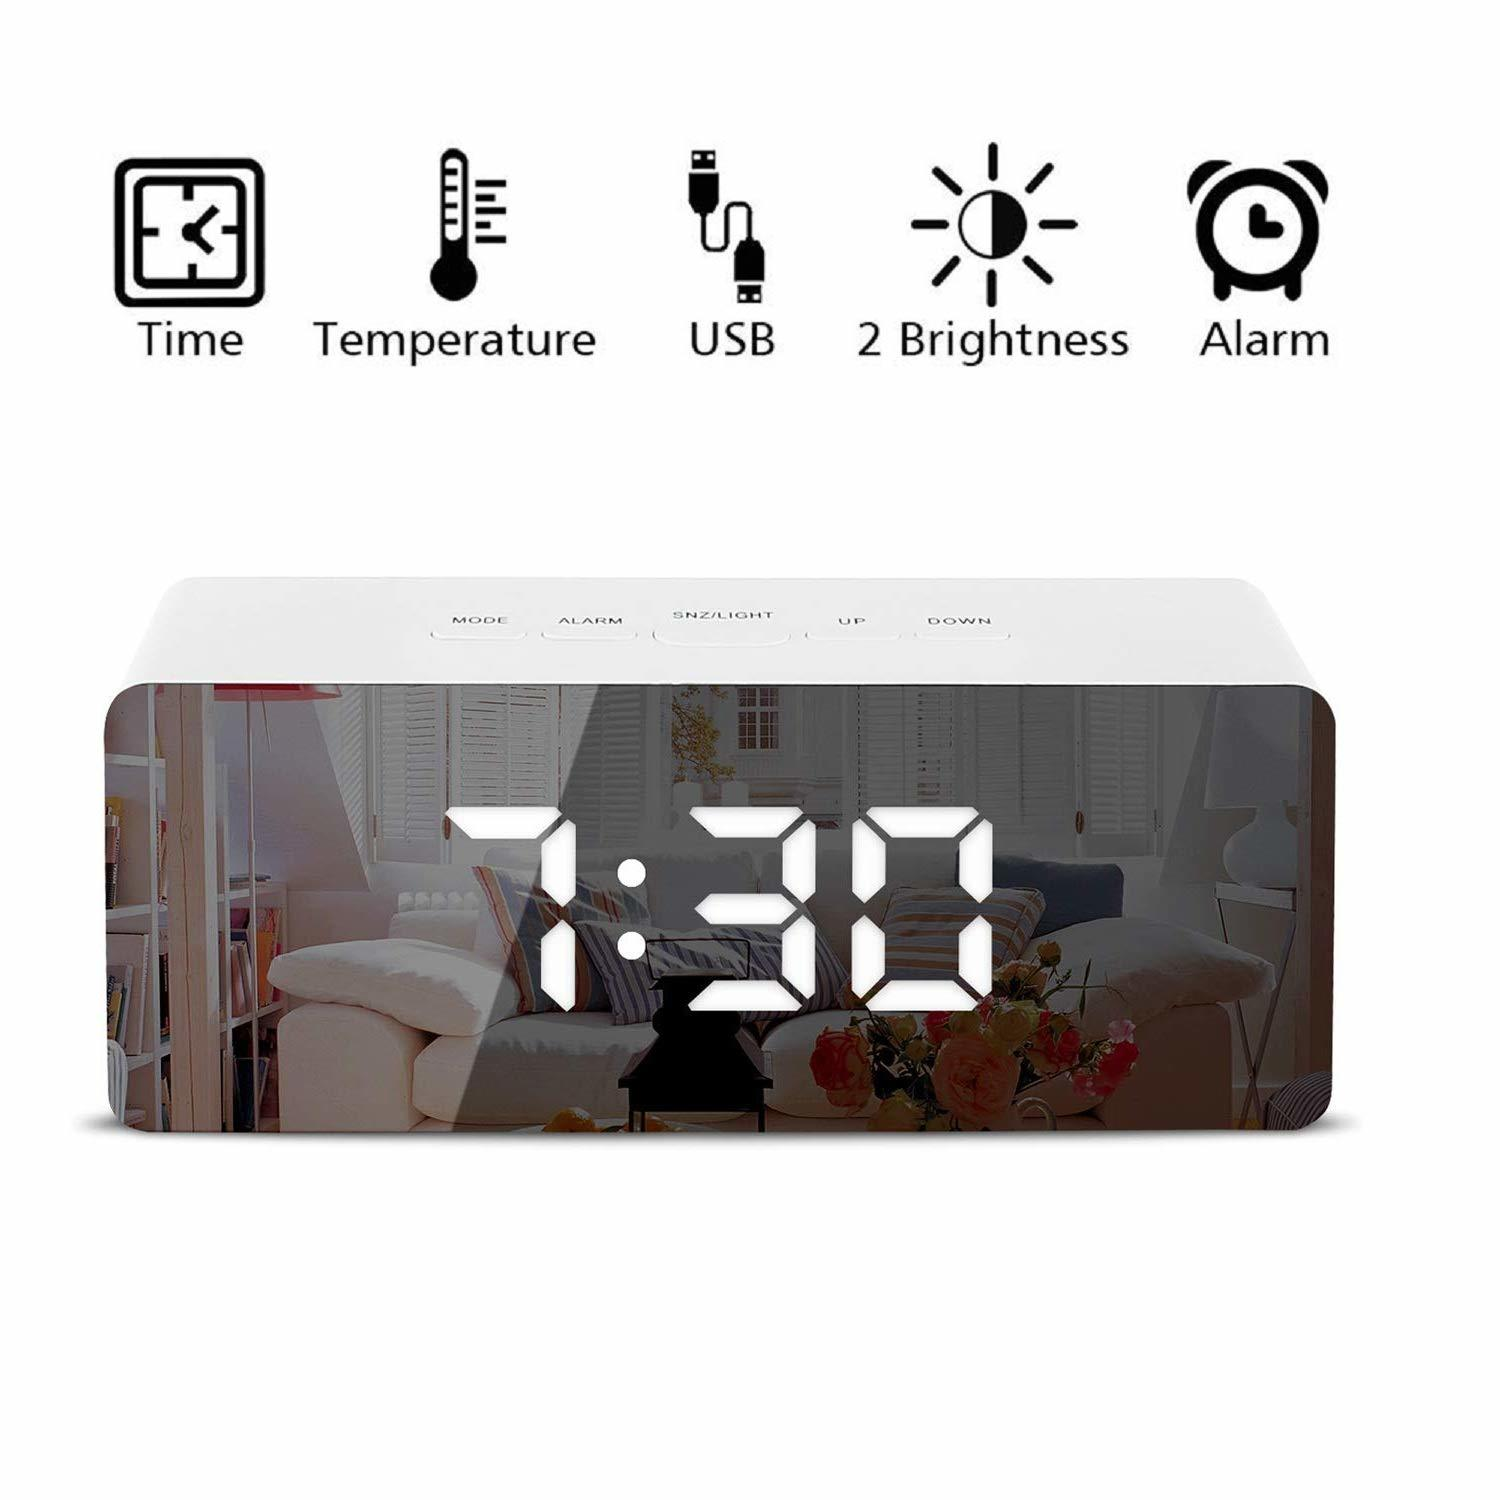 0_LED-Mirror-Alarm-Clock-Thermometer-Digital-Display-USB-Dimmable-Snooze-Temperature-Night-Mode-Light-Memory-Function.jpg